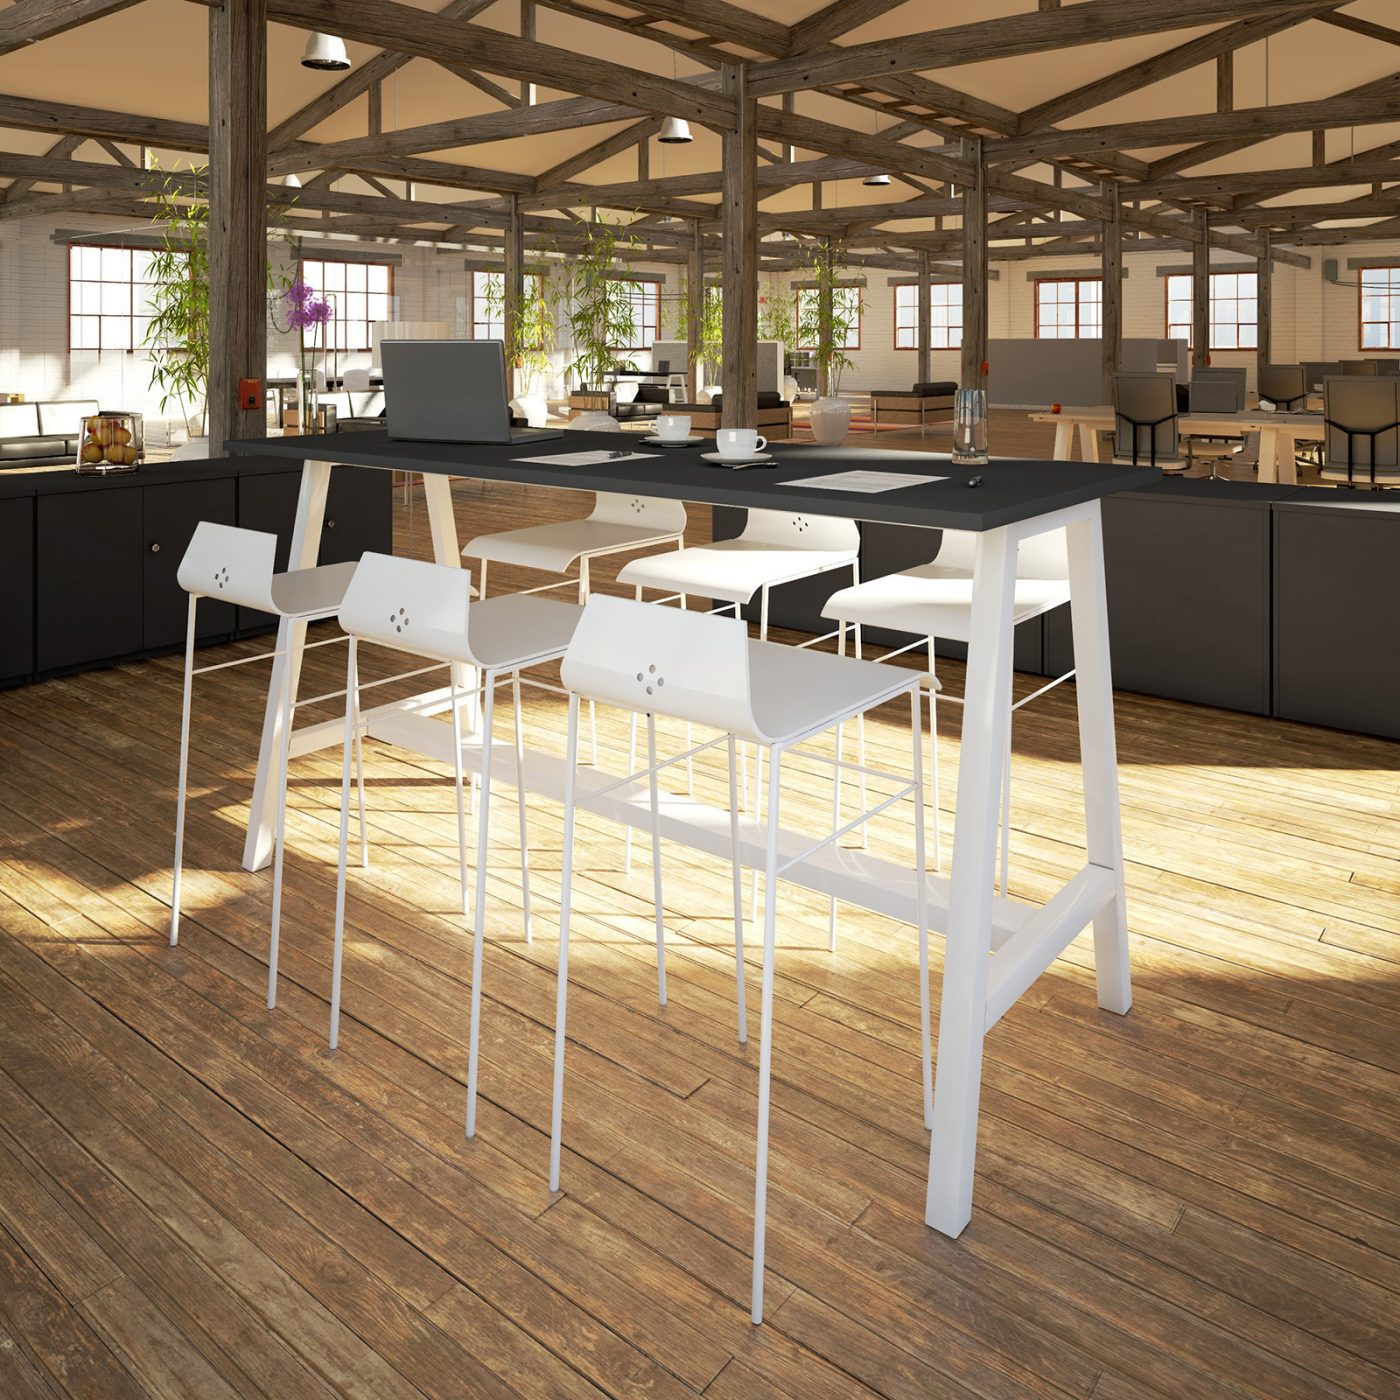 a frame poseur table, meeting table, breakout table, collaborative table, black table, white frame